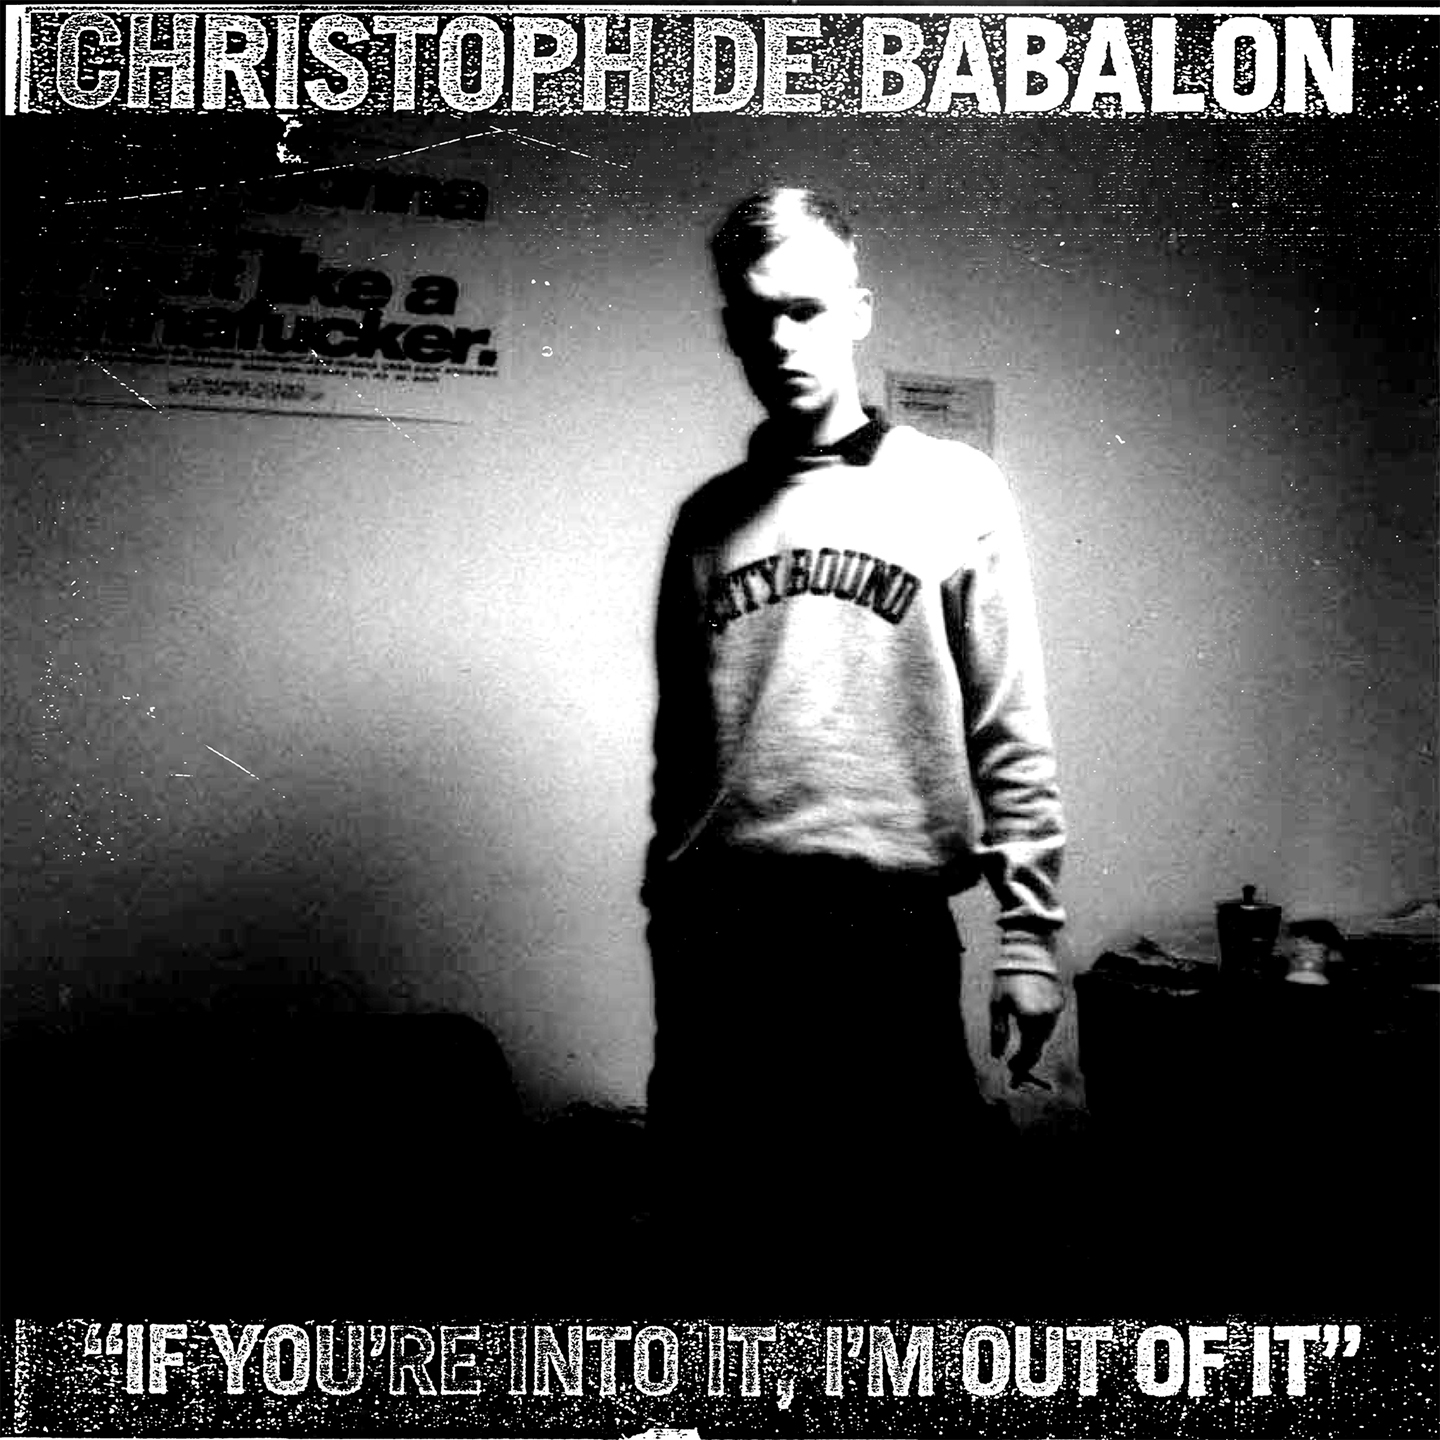 ChristophDeBabalon-LP.jpg